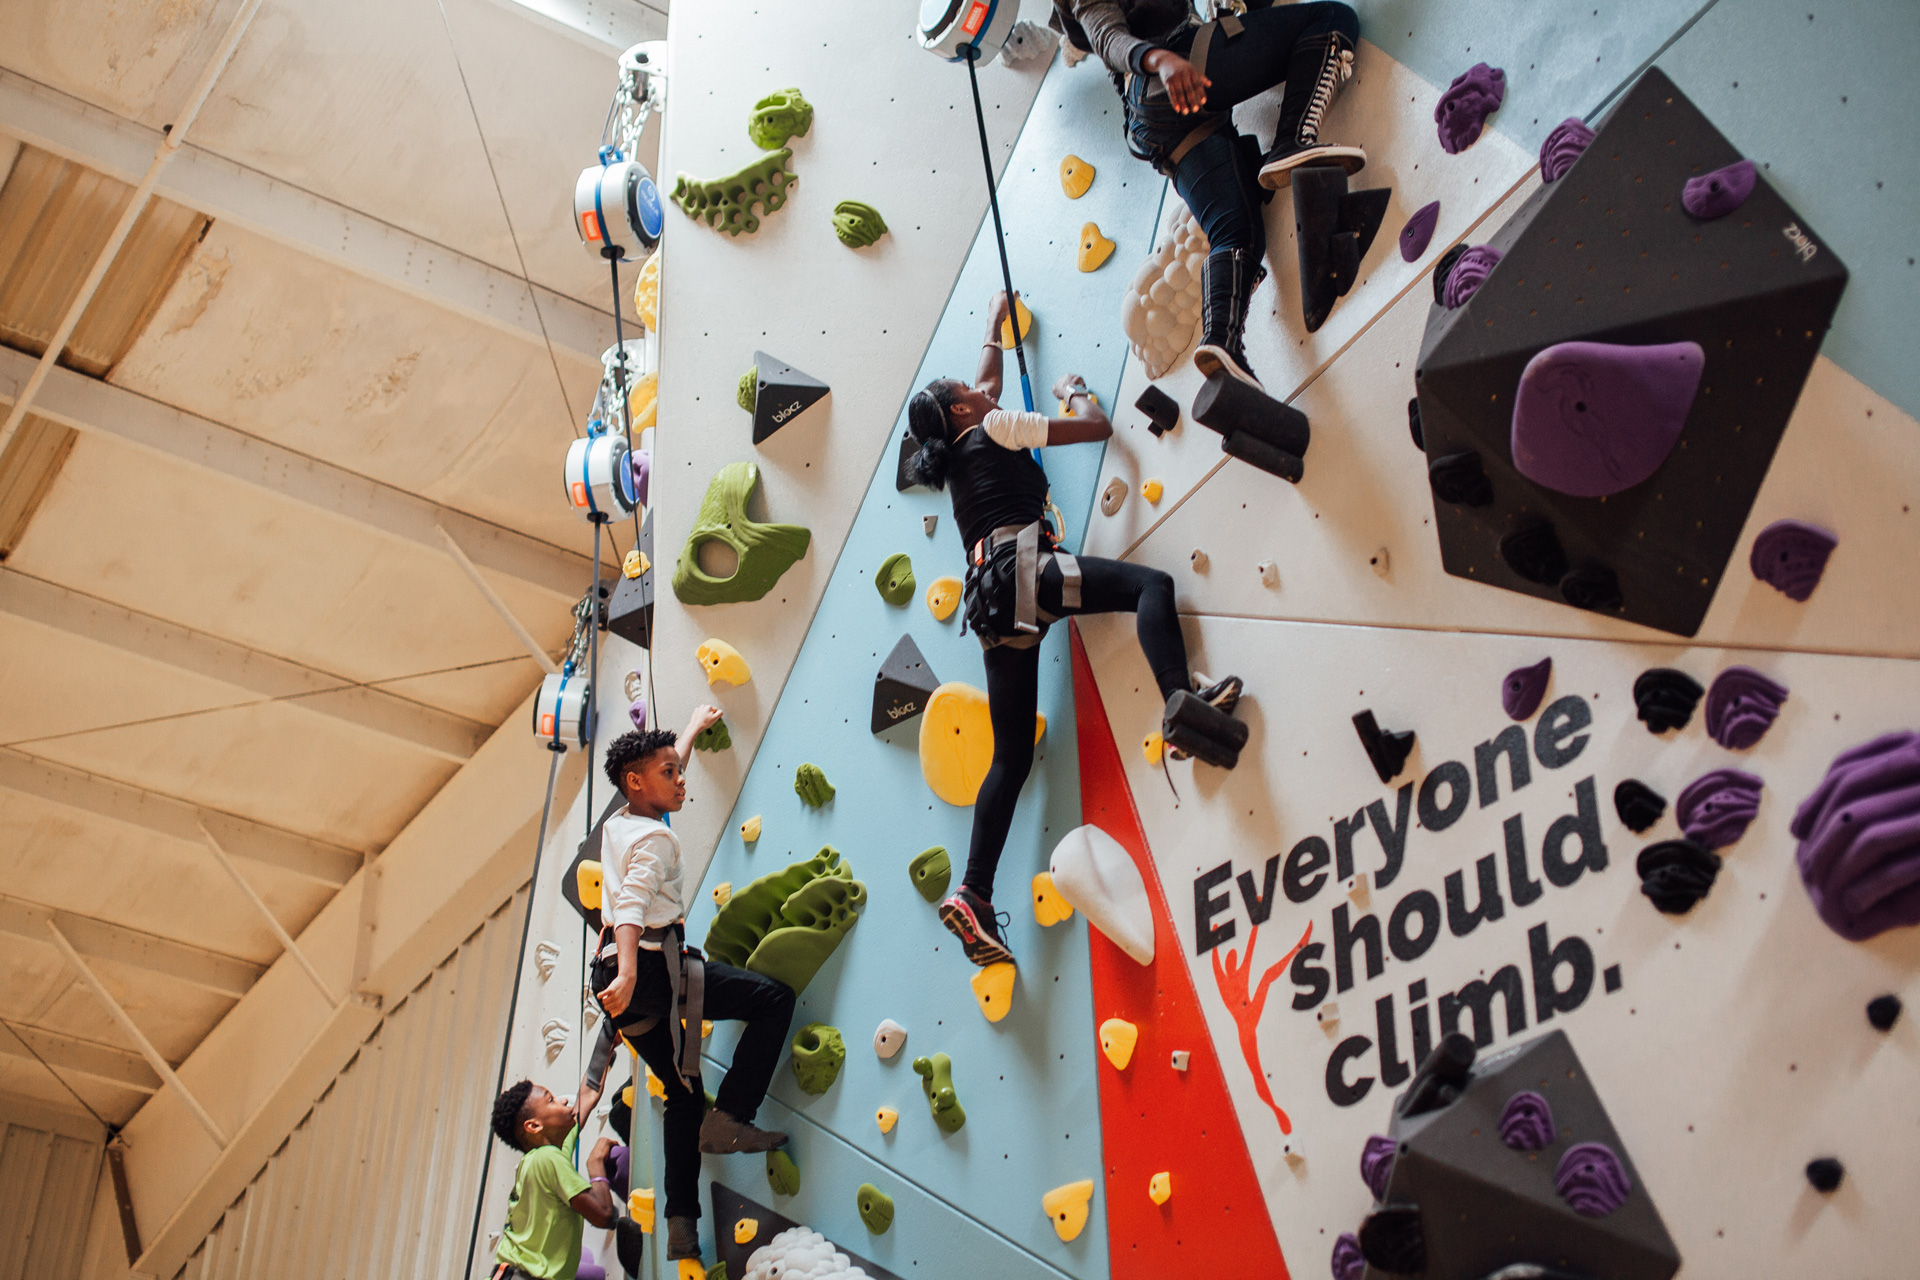 Everyone should climb - boys and girls club members try climbing for the first time.